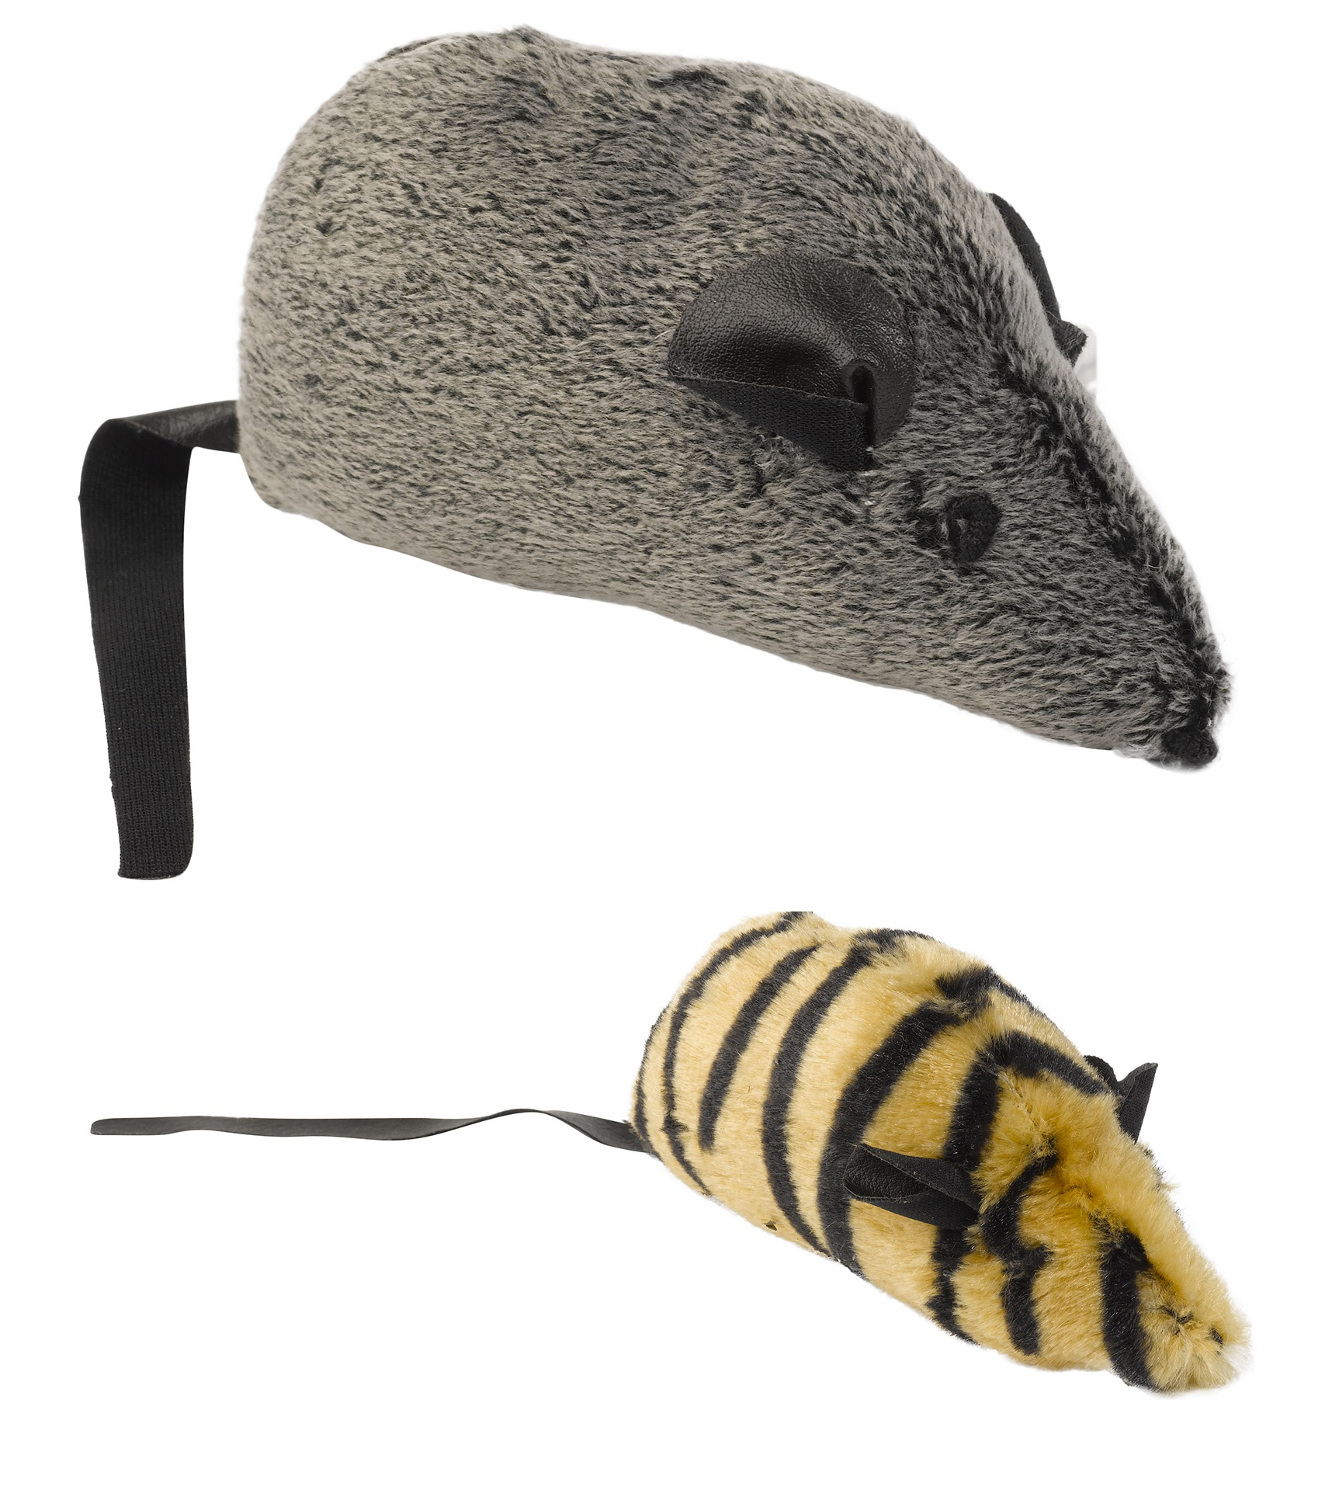 Fun Cat Toys : Petface rat attack plush cat toys catnip stuffed